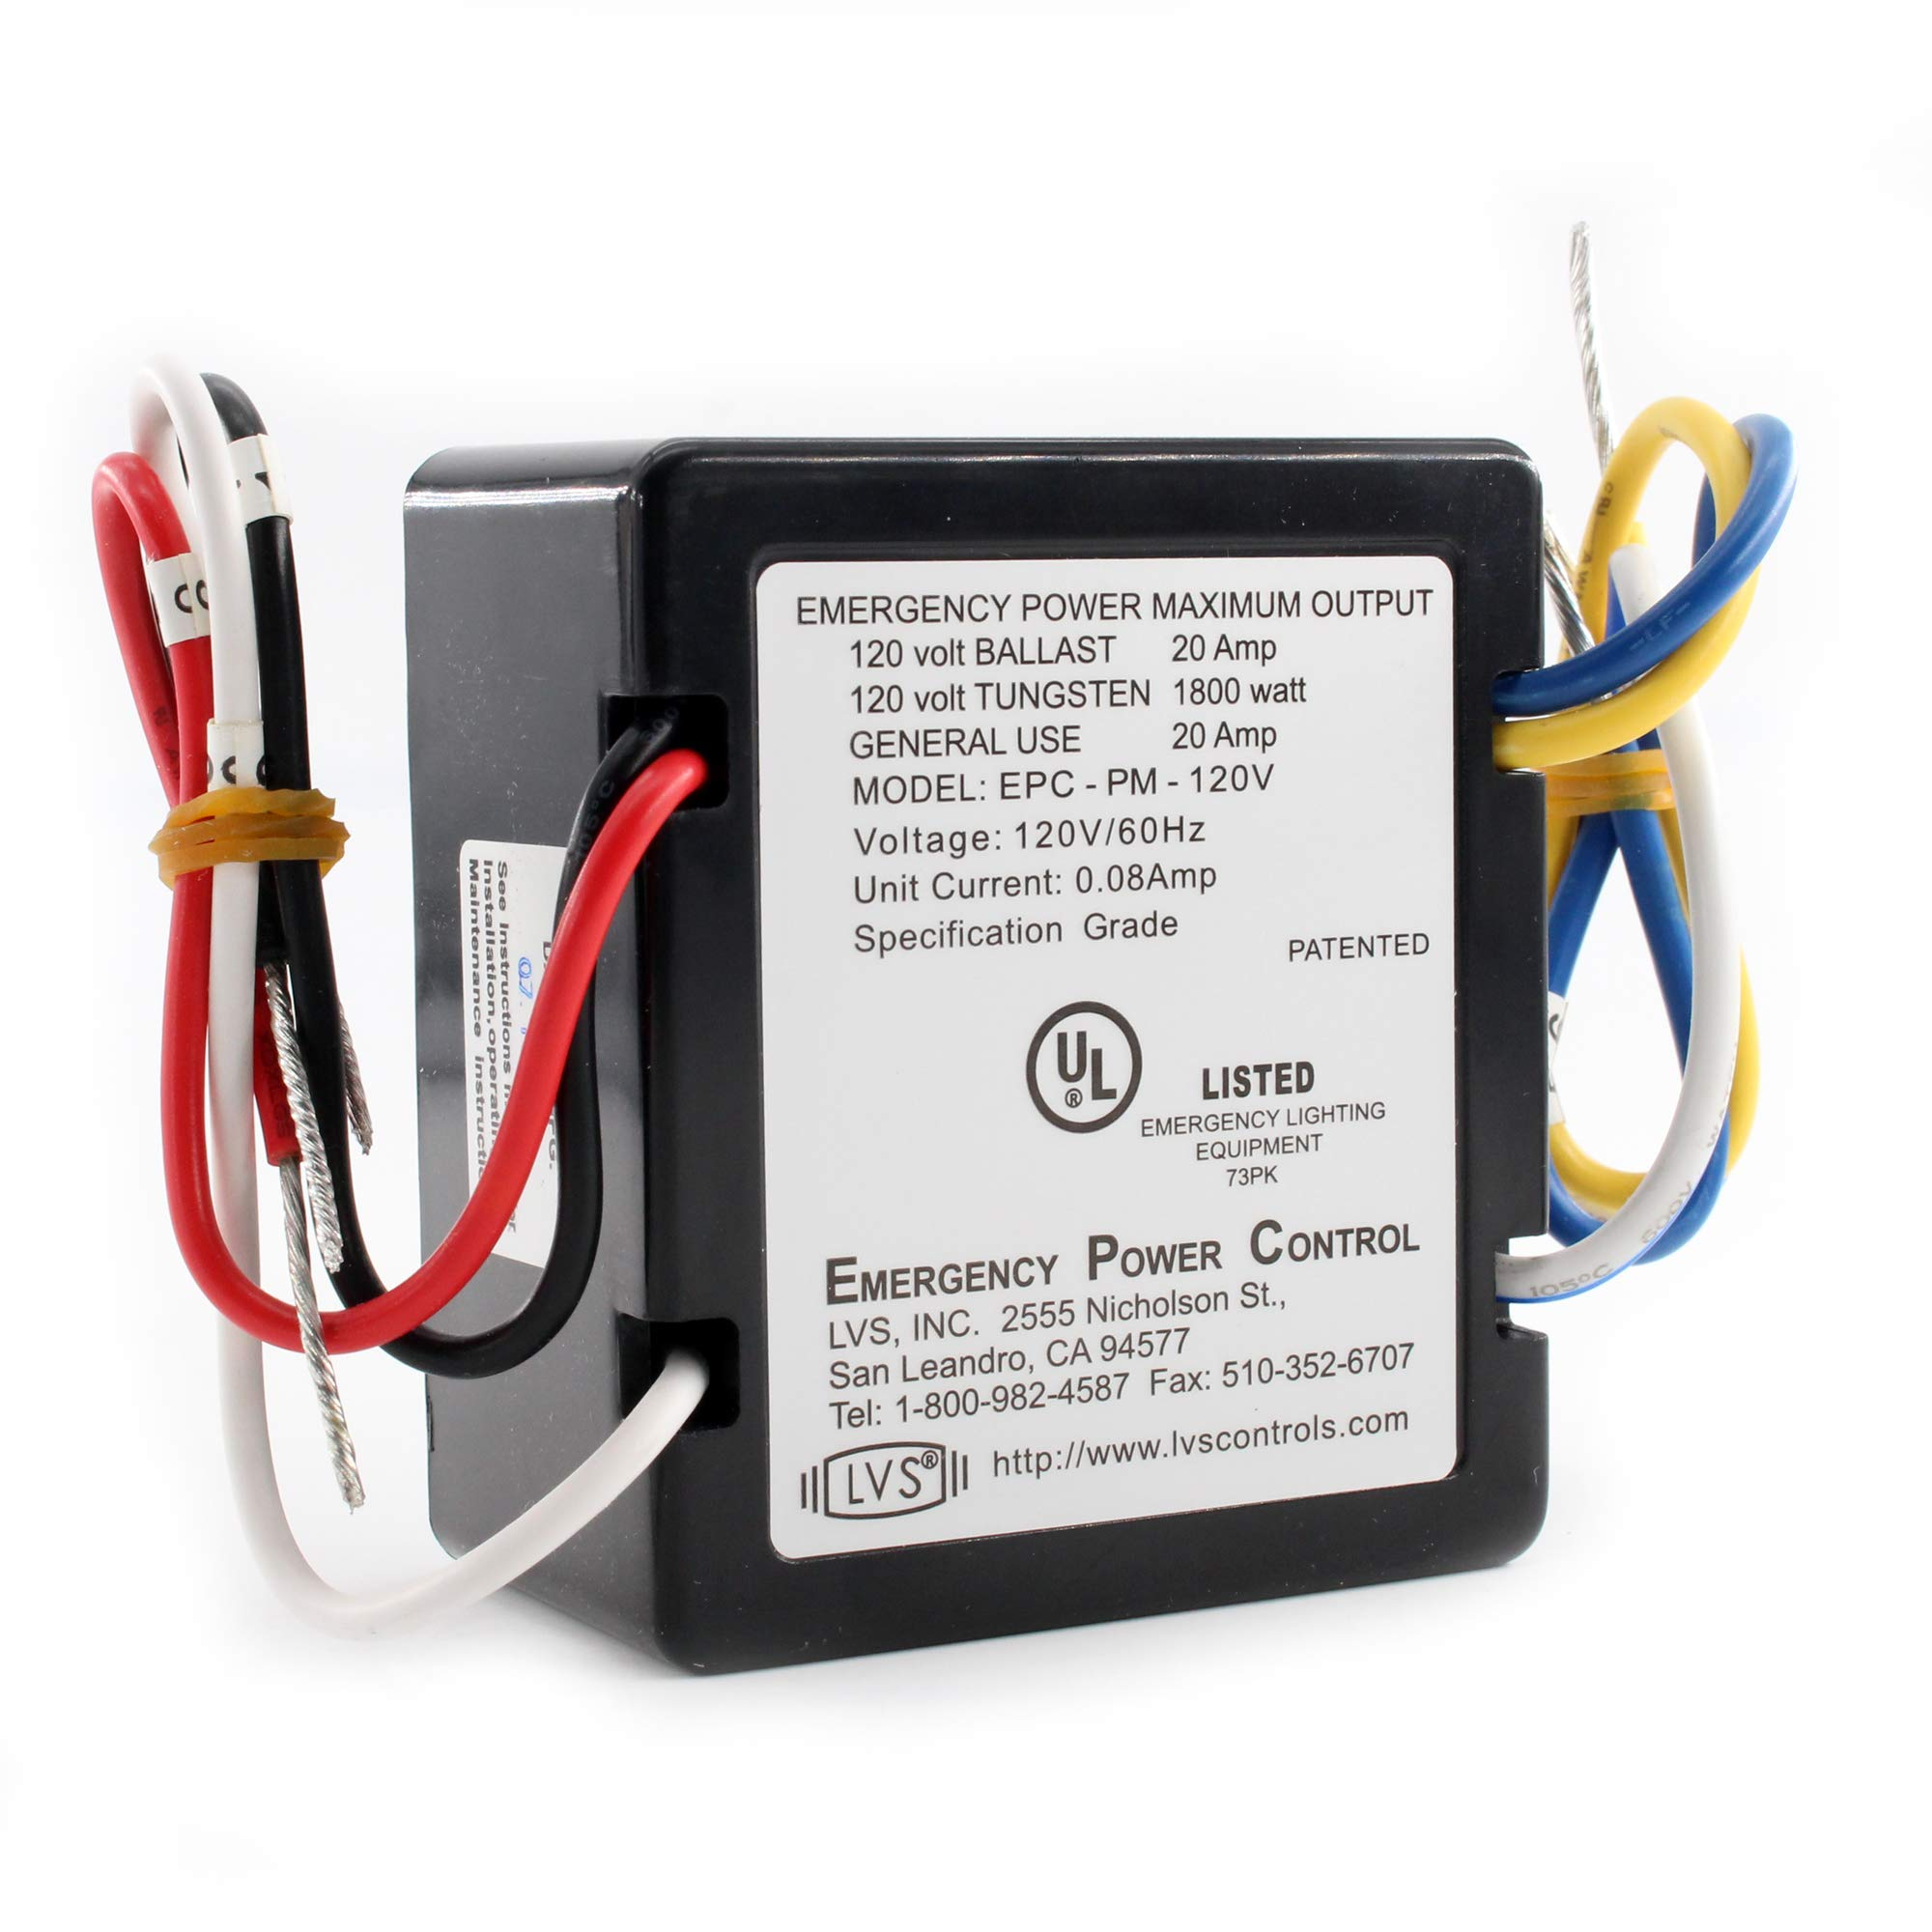 LVS Controls HEPC-120V Emergency Power Control, 120V, 20A, 60Hz by LVS Controls (Image #2)